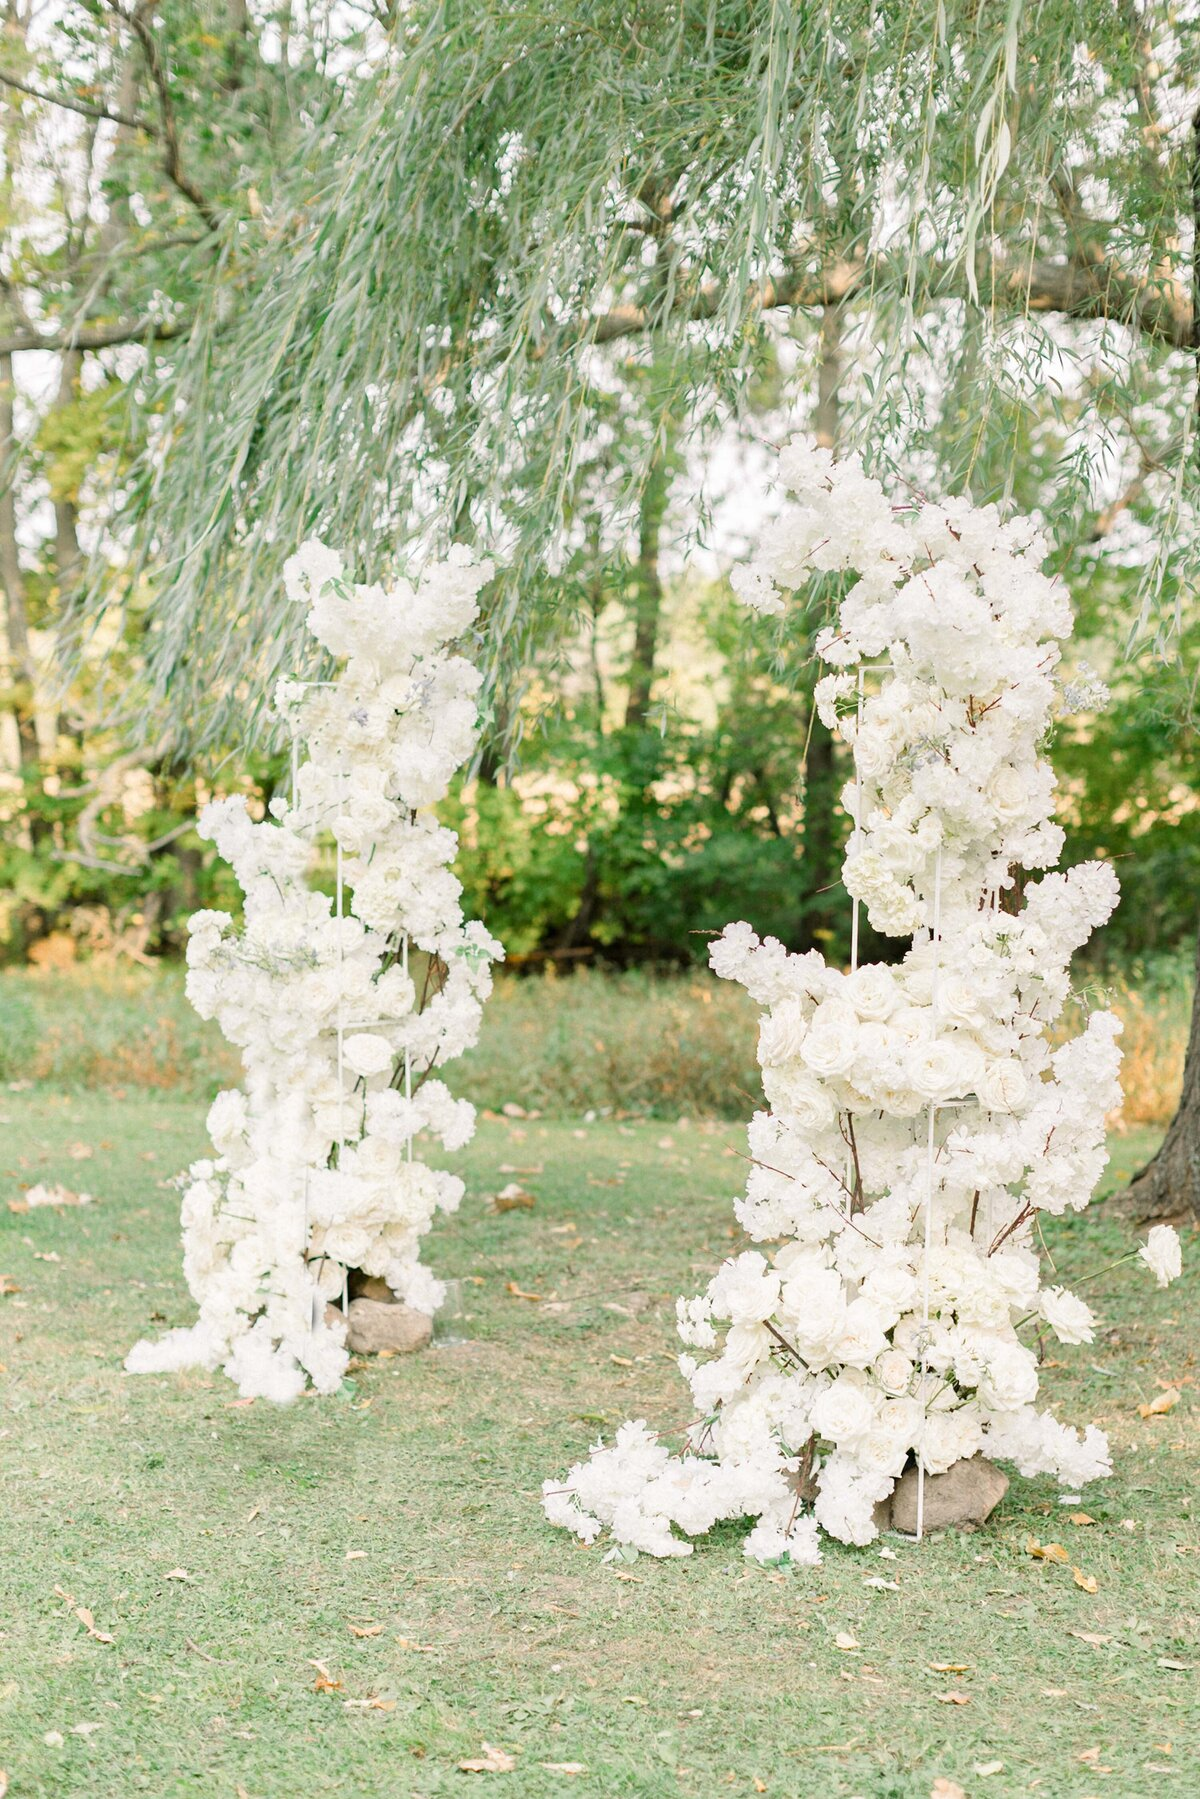 Abella Wedding Photos, Abella Minnesota, Minnesota Bride, Minnesota wedding photographer, Minneapolis wedding photographer, fine art wedding photographer, minnesota fine art wedding photographer, minneapolis wedding photographer, Ceremony arch